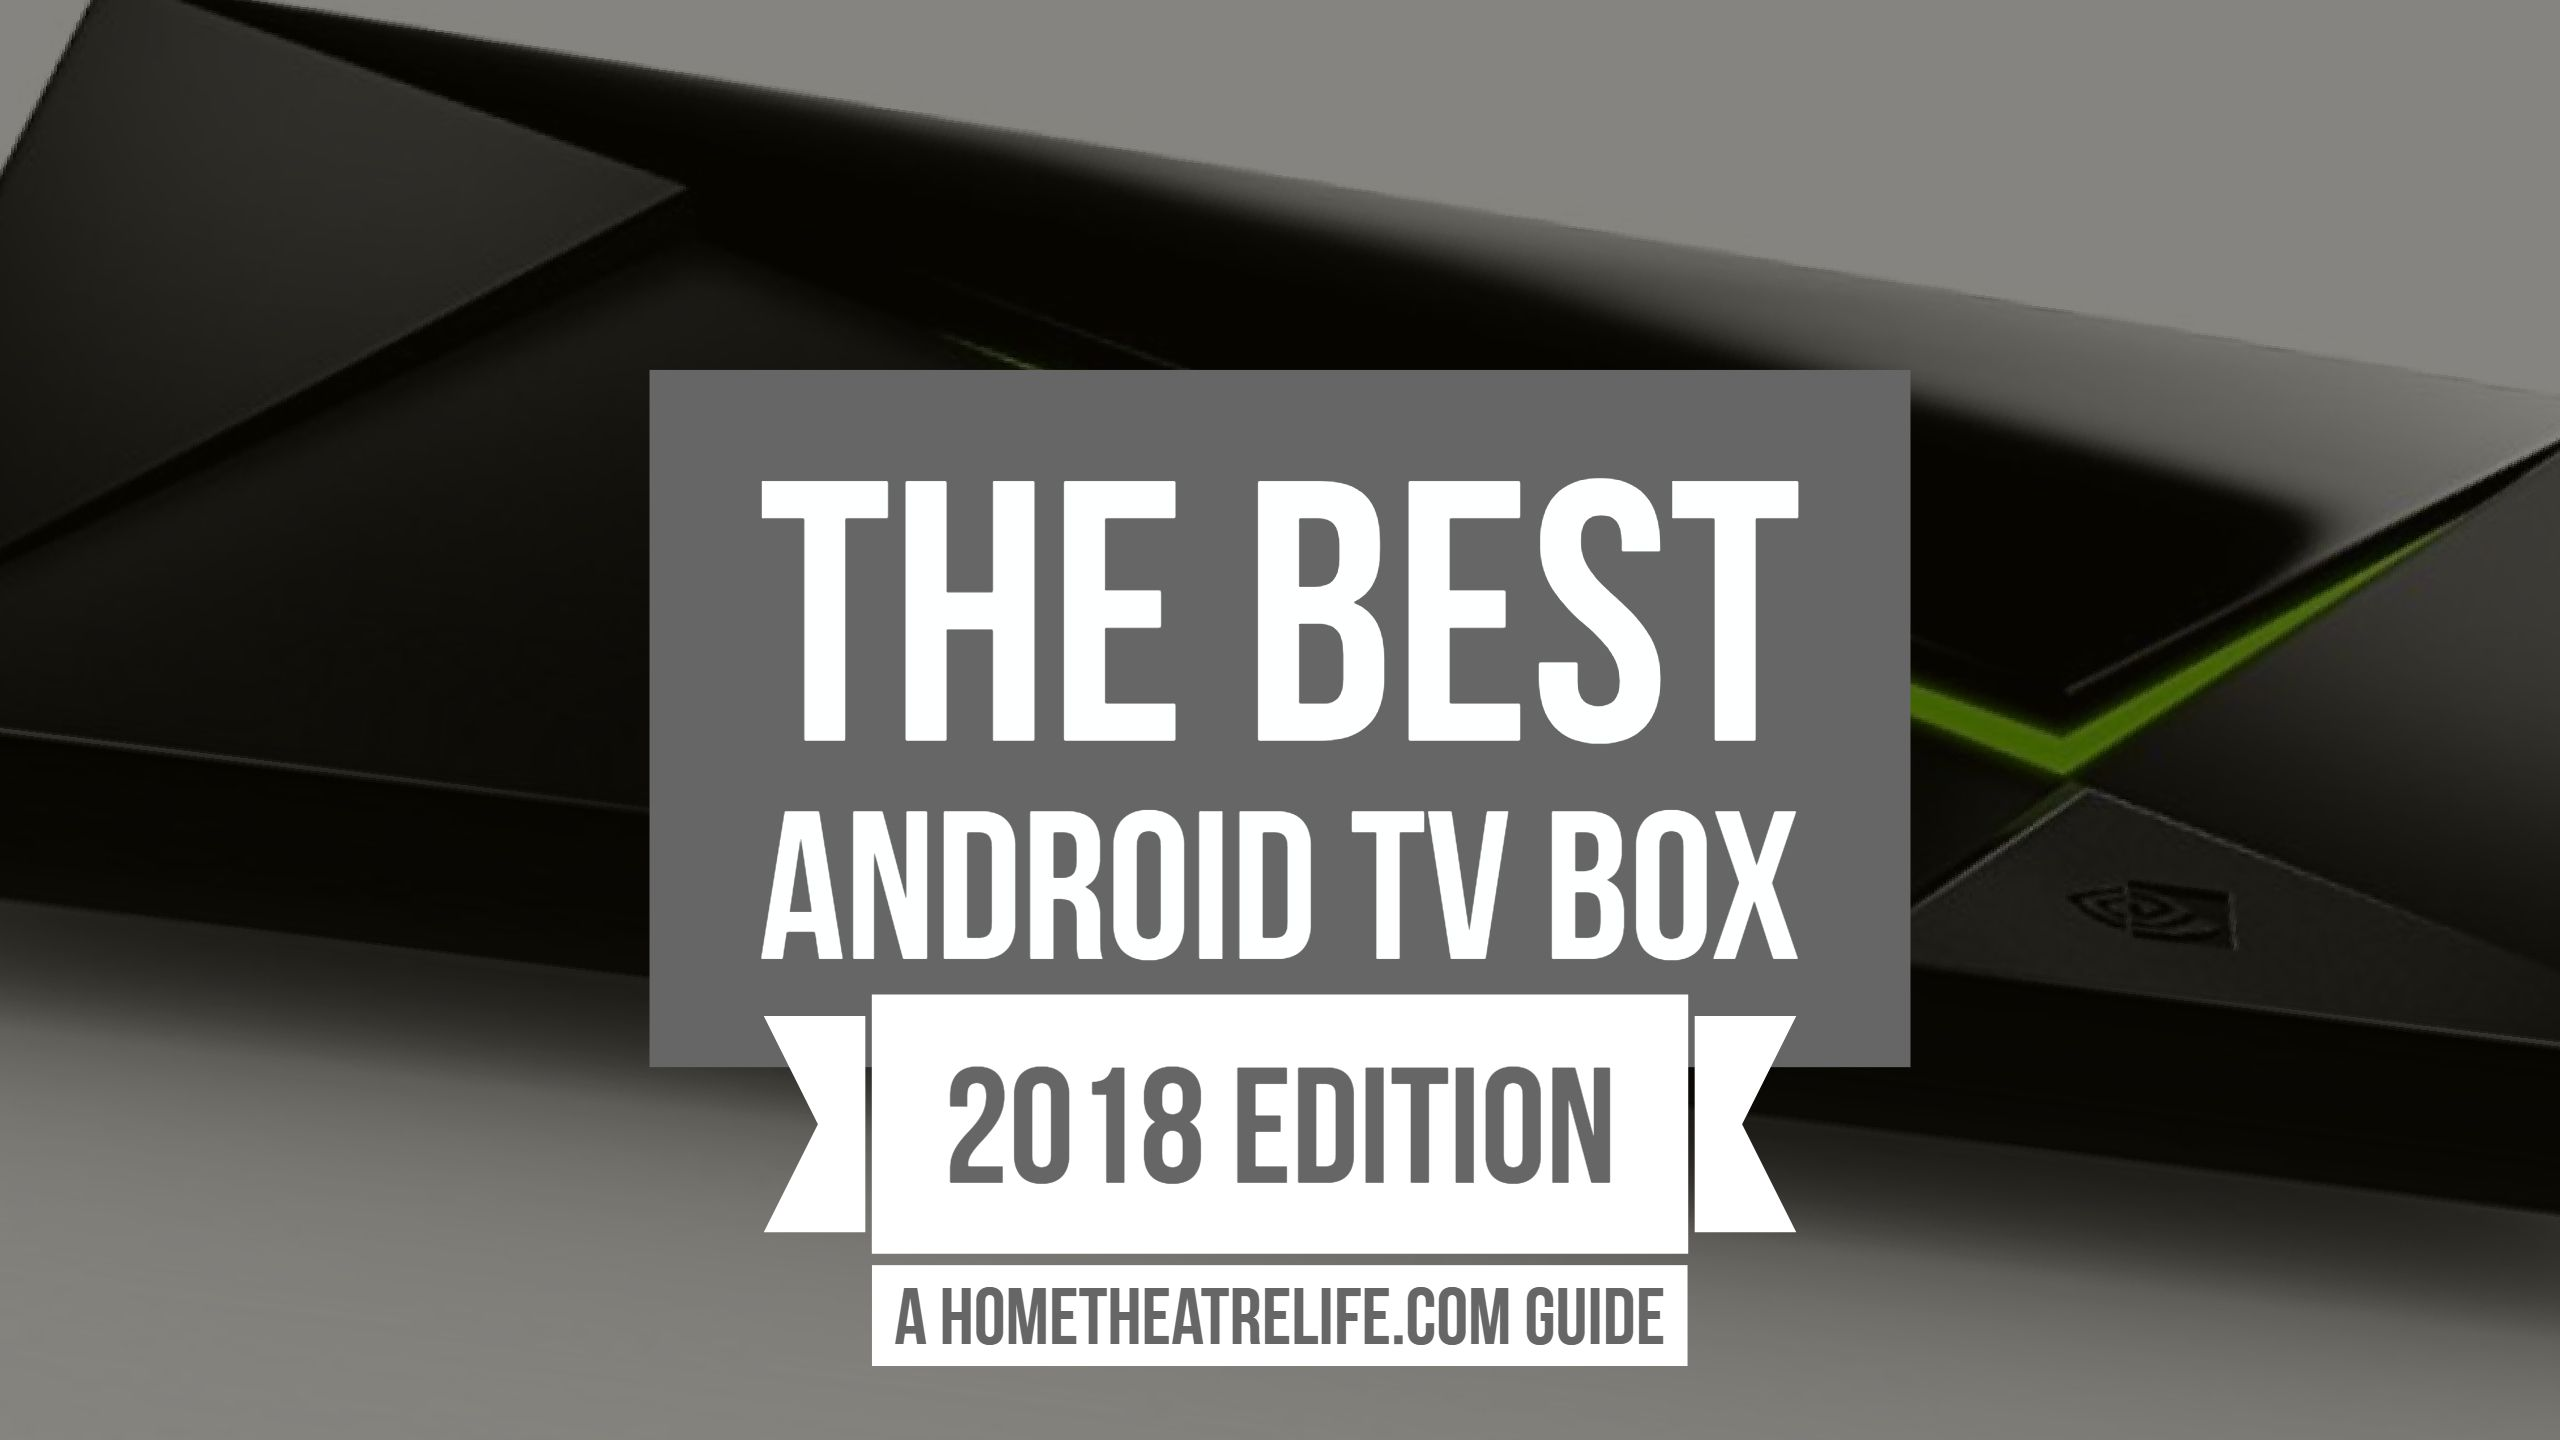 Best Android TV Box 2018: 7 Top Streaming Media Players for